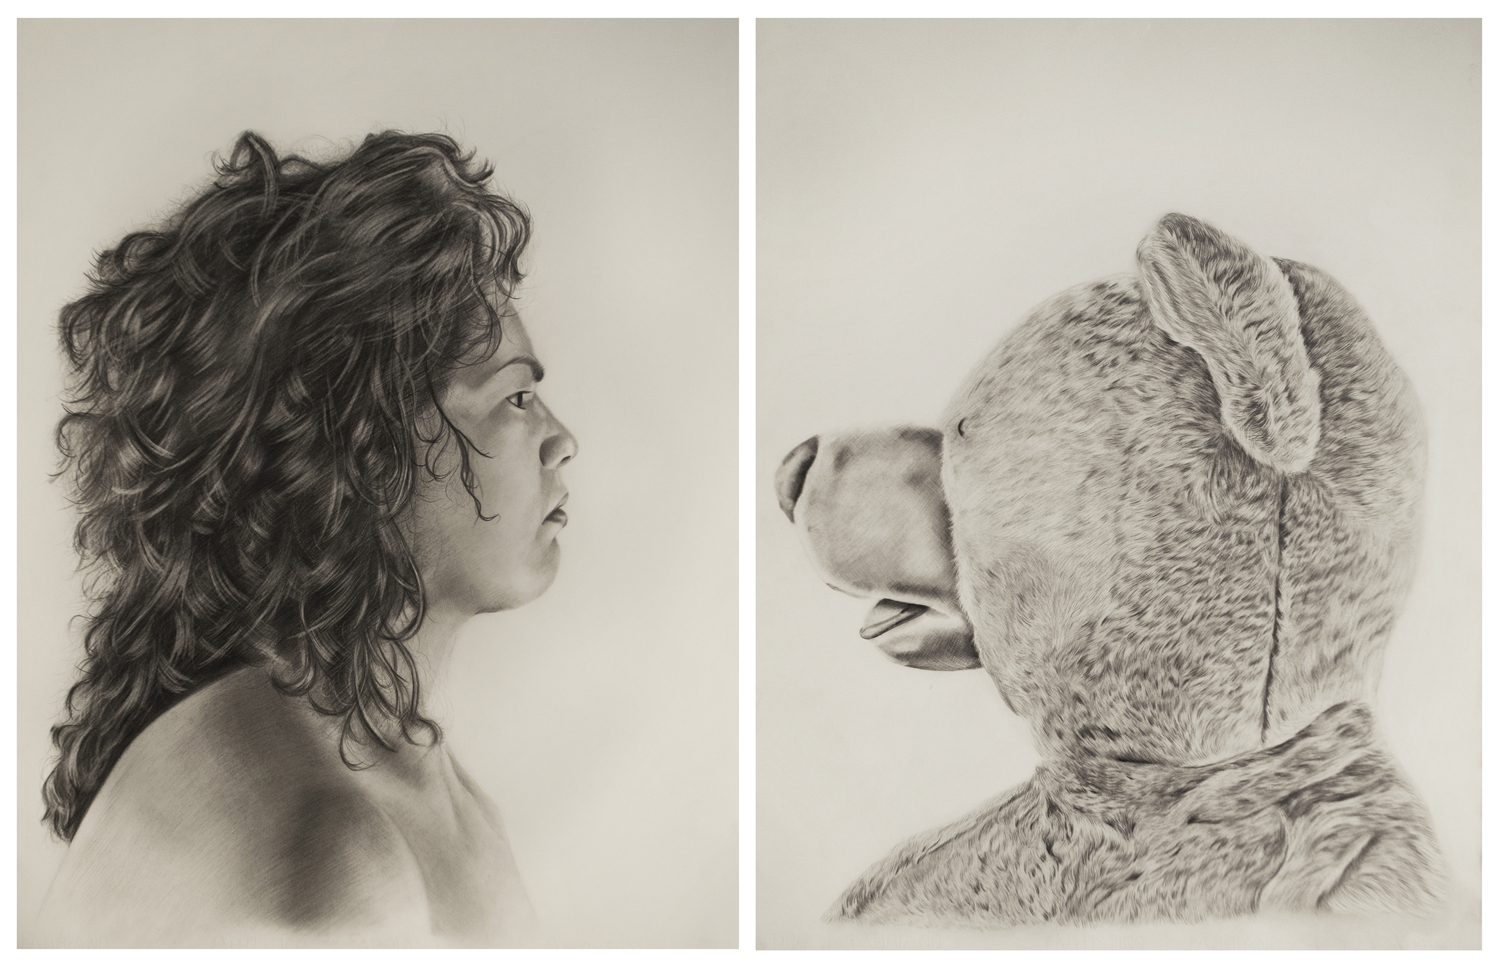 Ileana Tejada.    Princess Ileana vs. Lester the Molester , diptych, 30 x 22 inches each, Graphite on paper. Image Courtesy of the artist